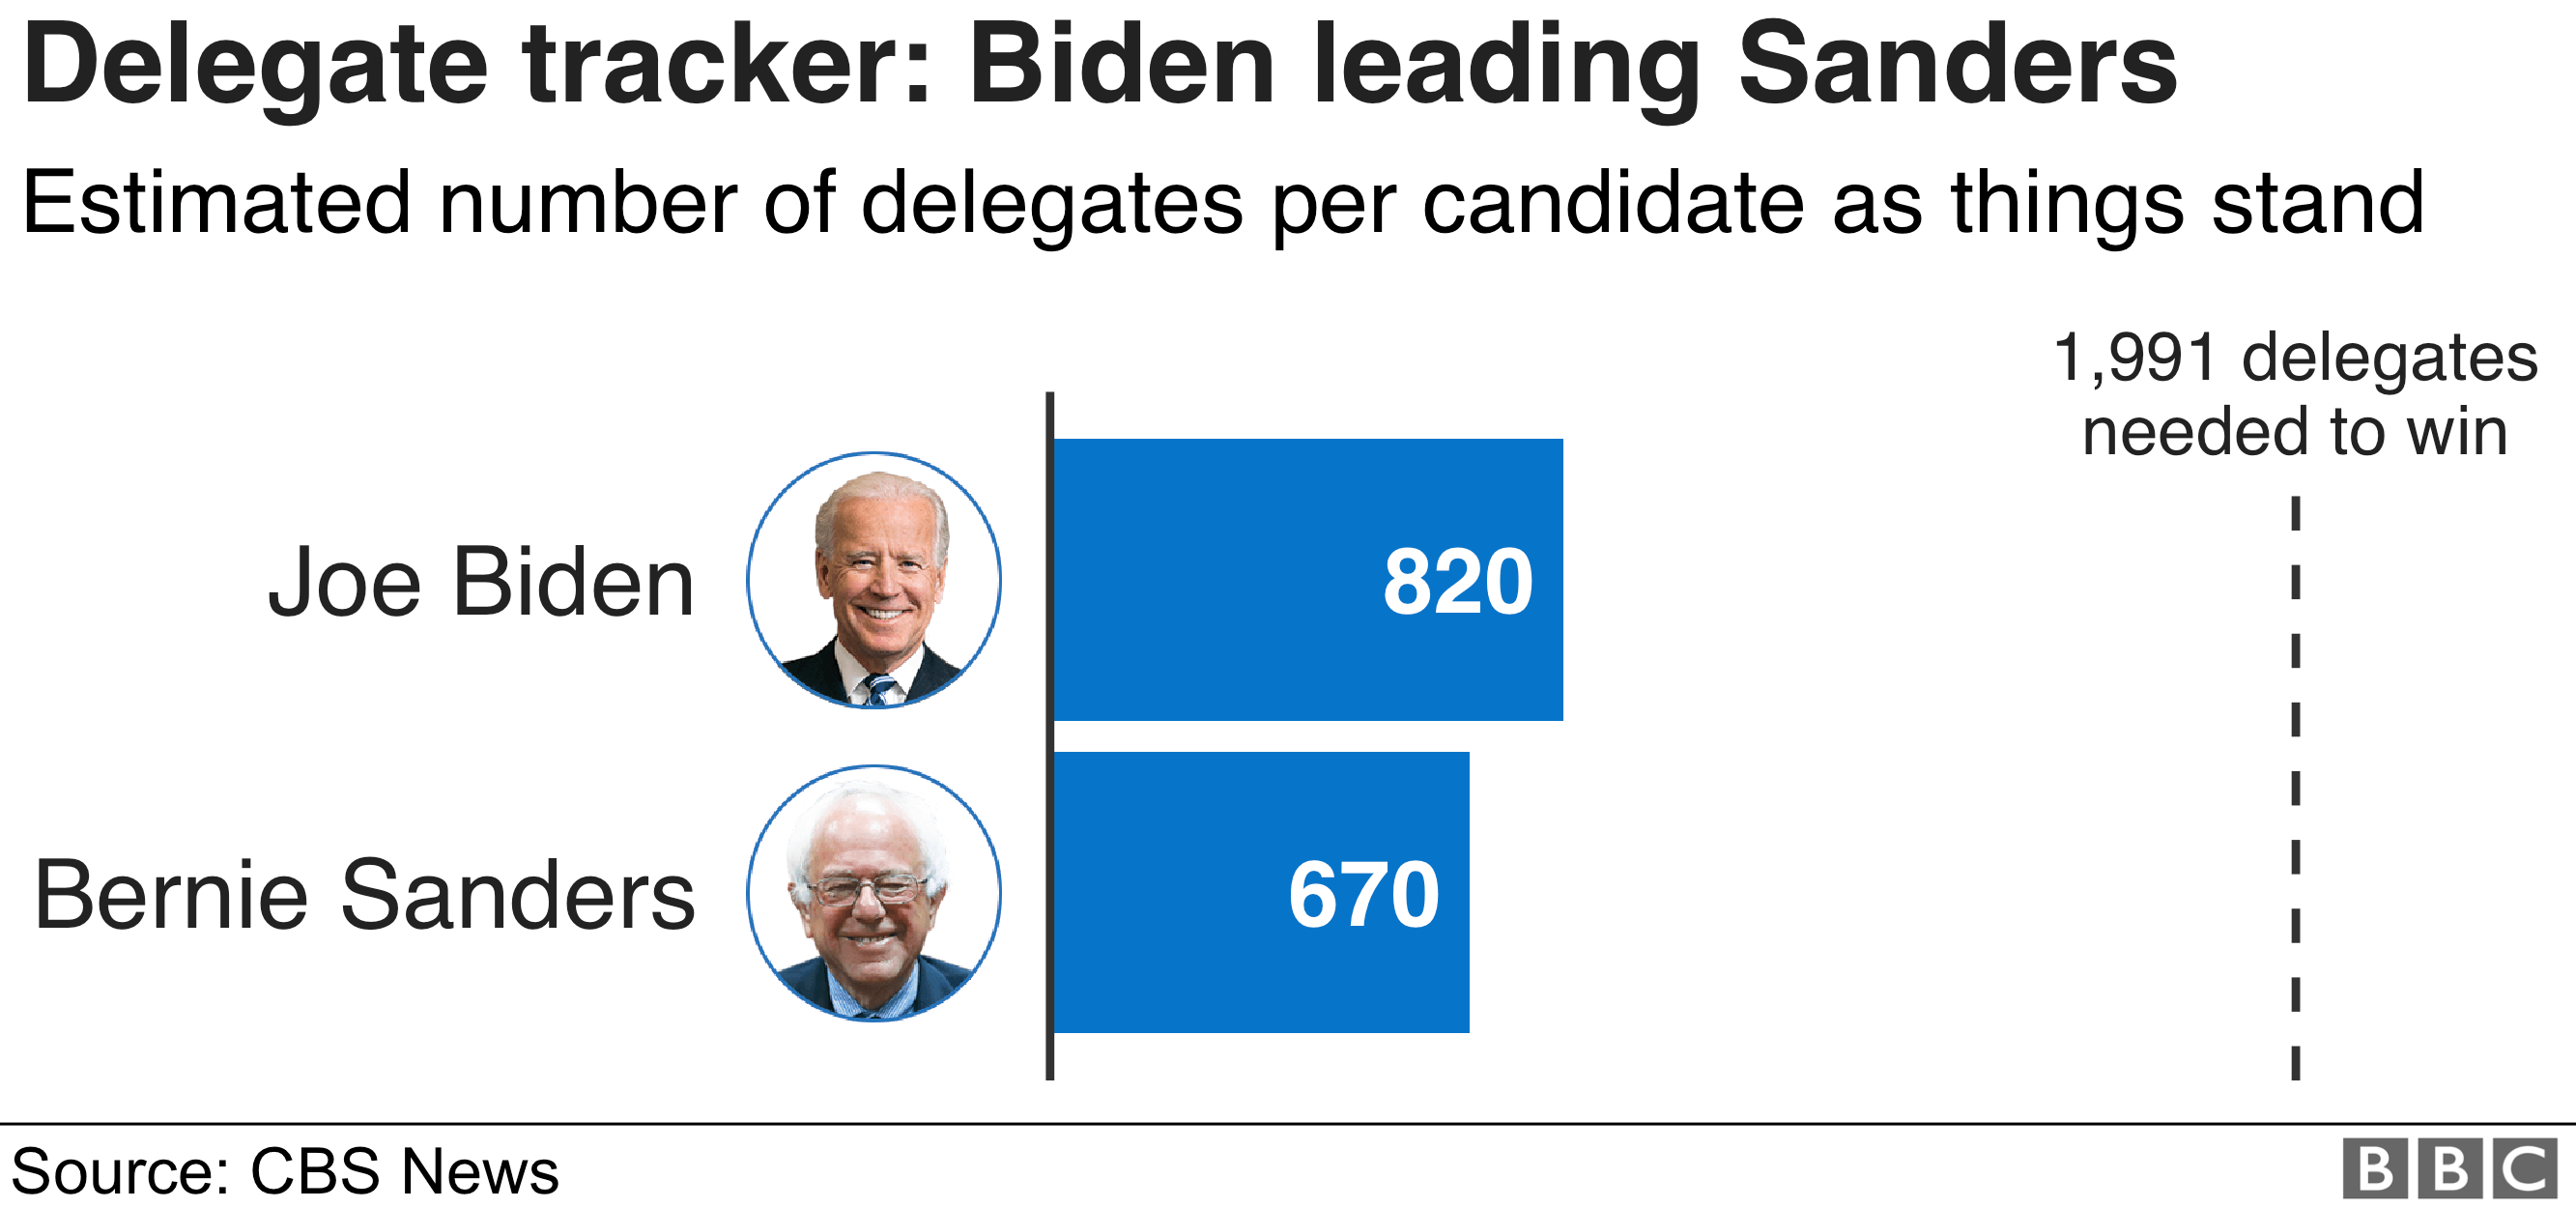 A delegate tracker showing Biden leading Sanders